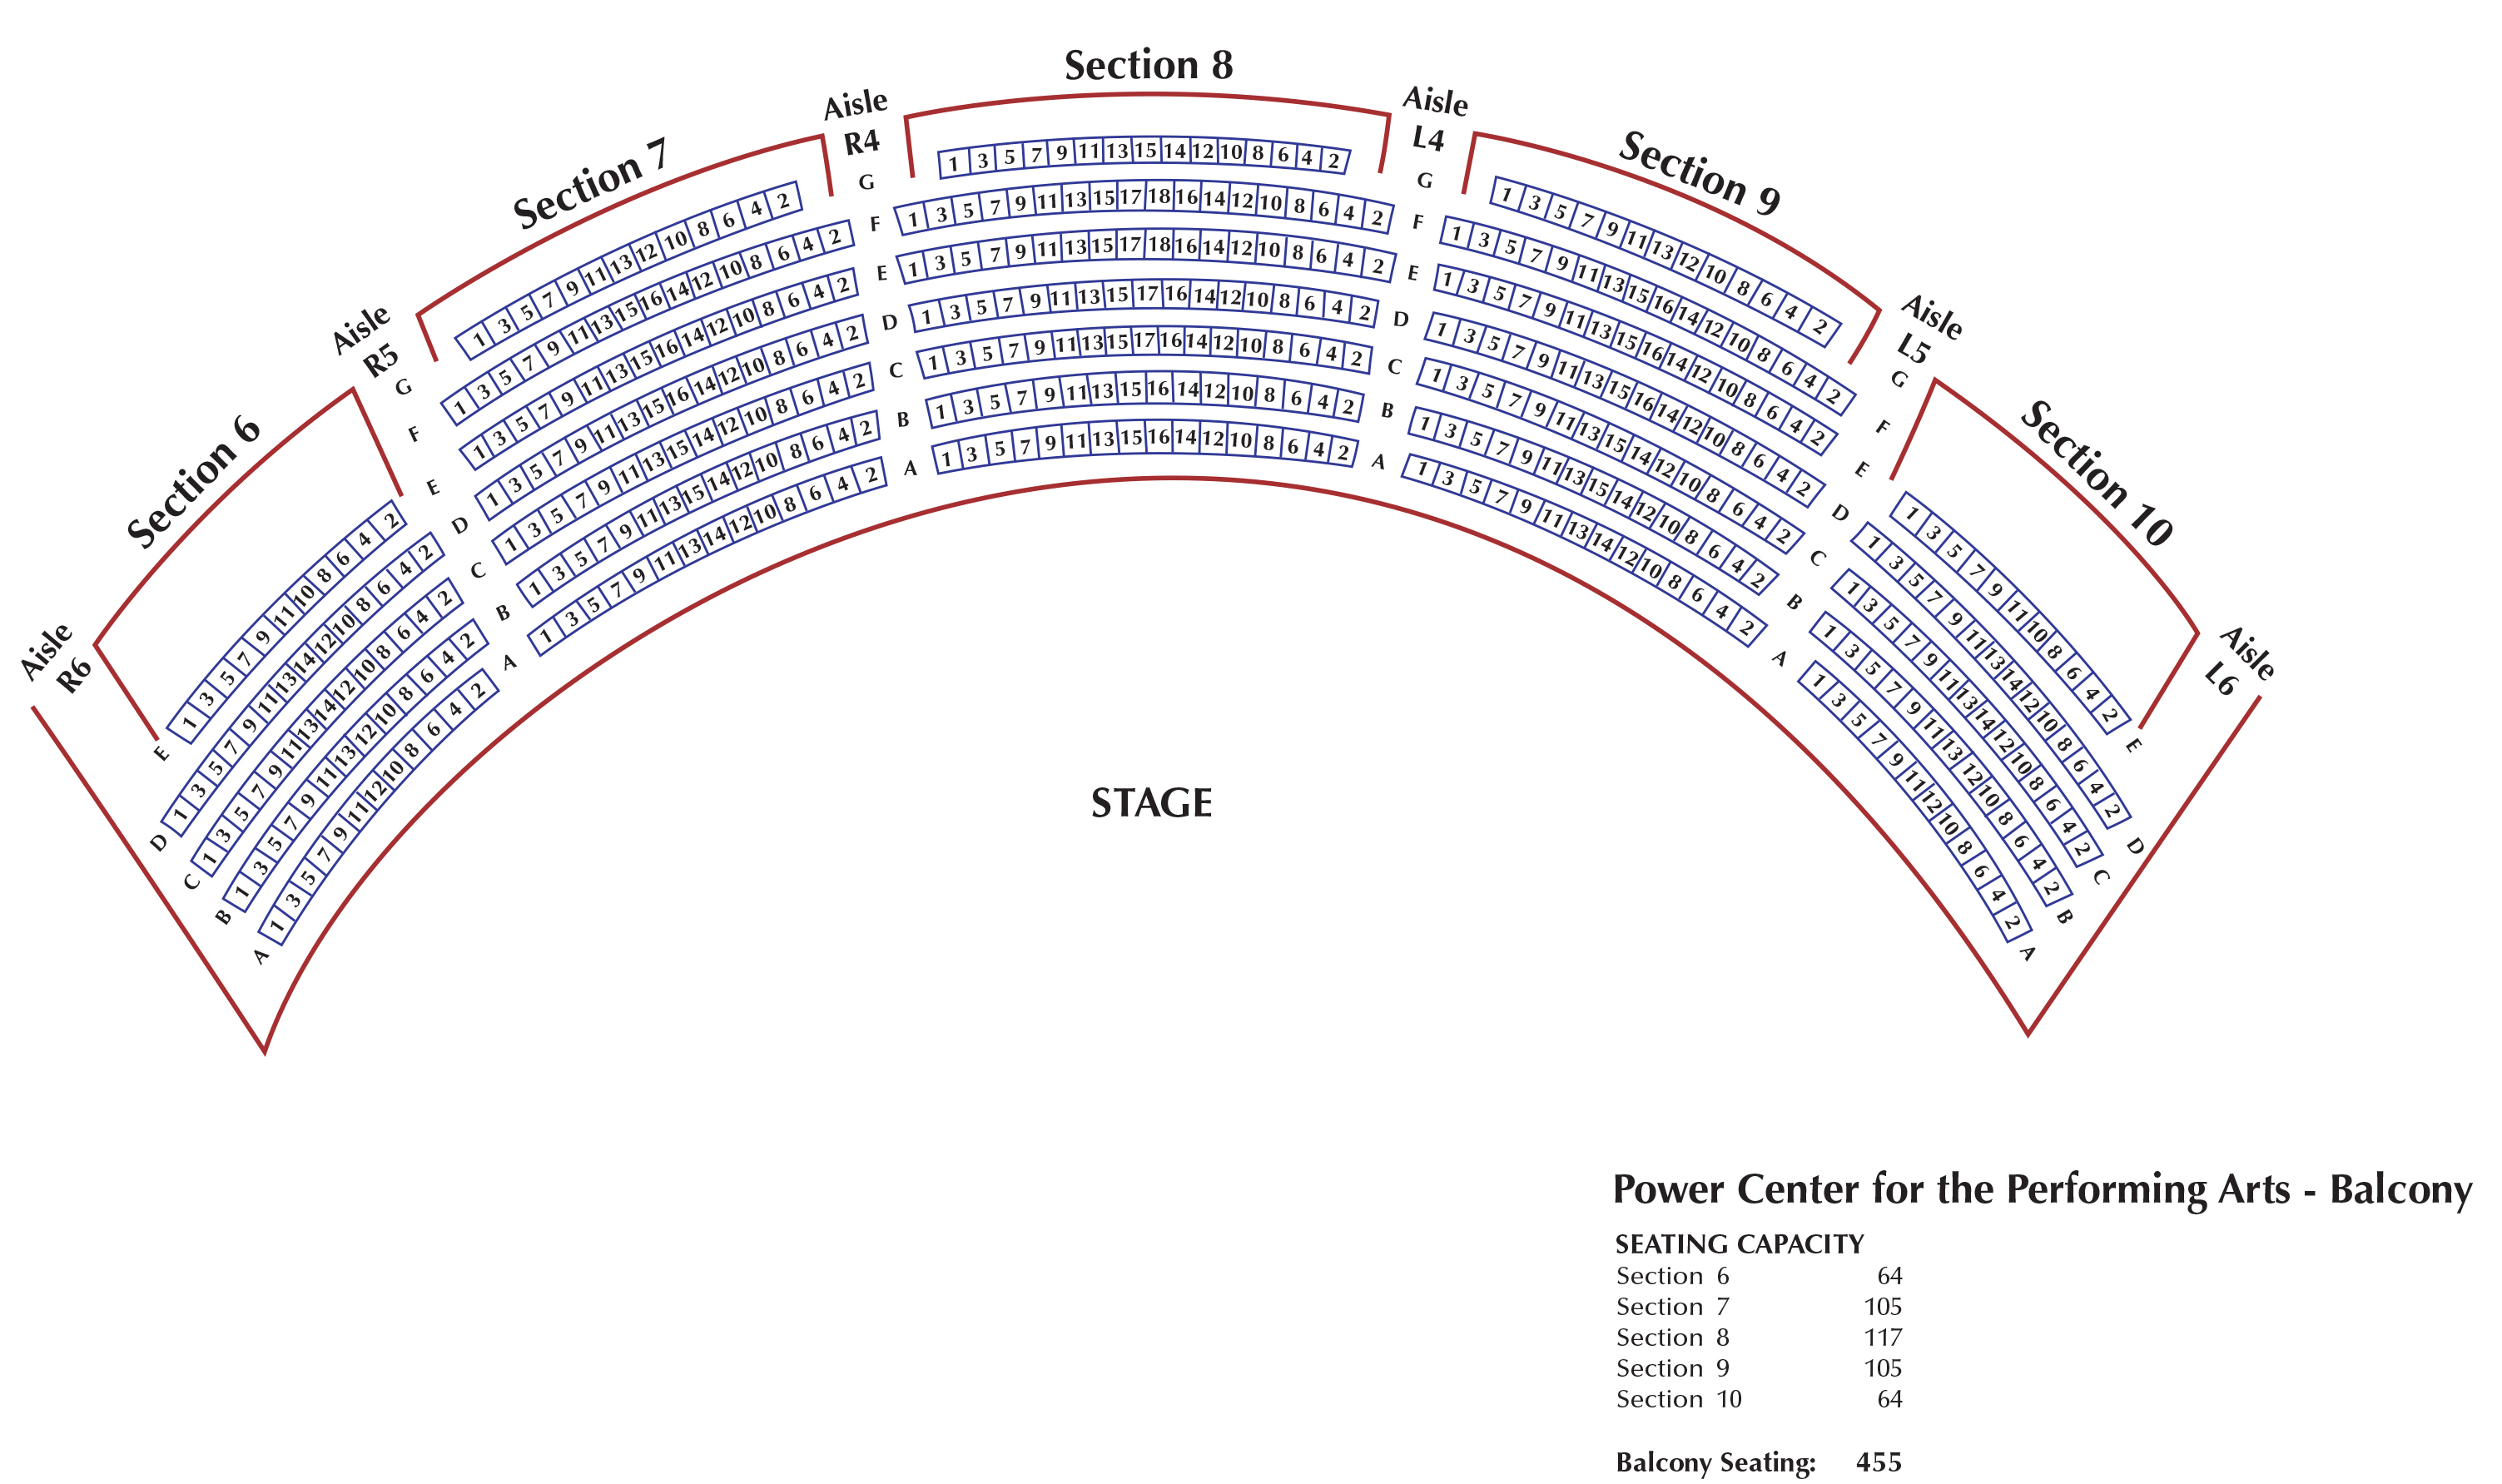 Power Center U M School Of Music Theatre Dance The First One Has A Diagram Showing Steps At Http Www Seating Charts